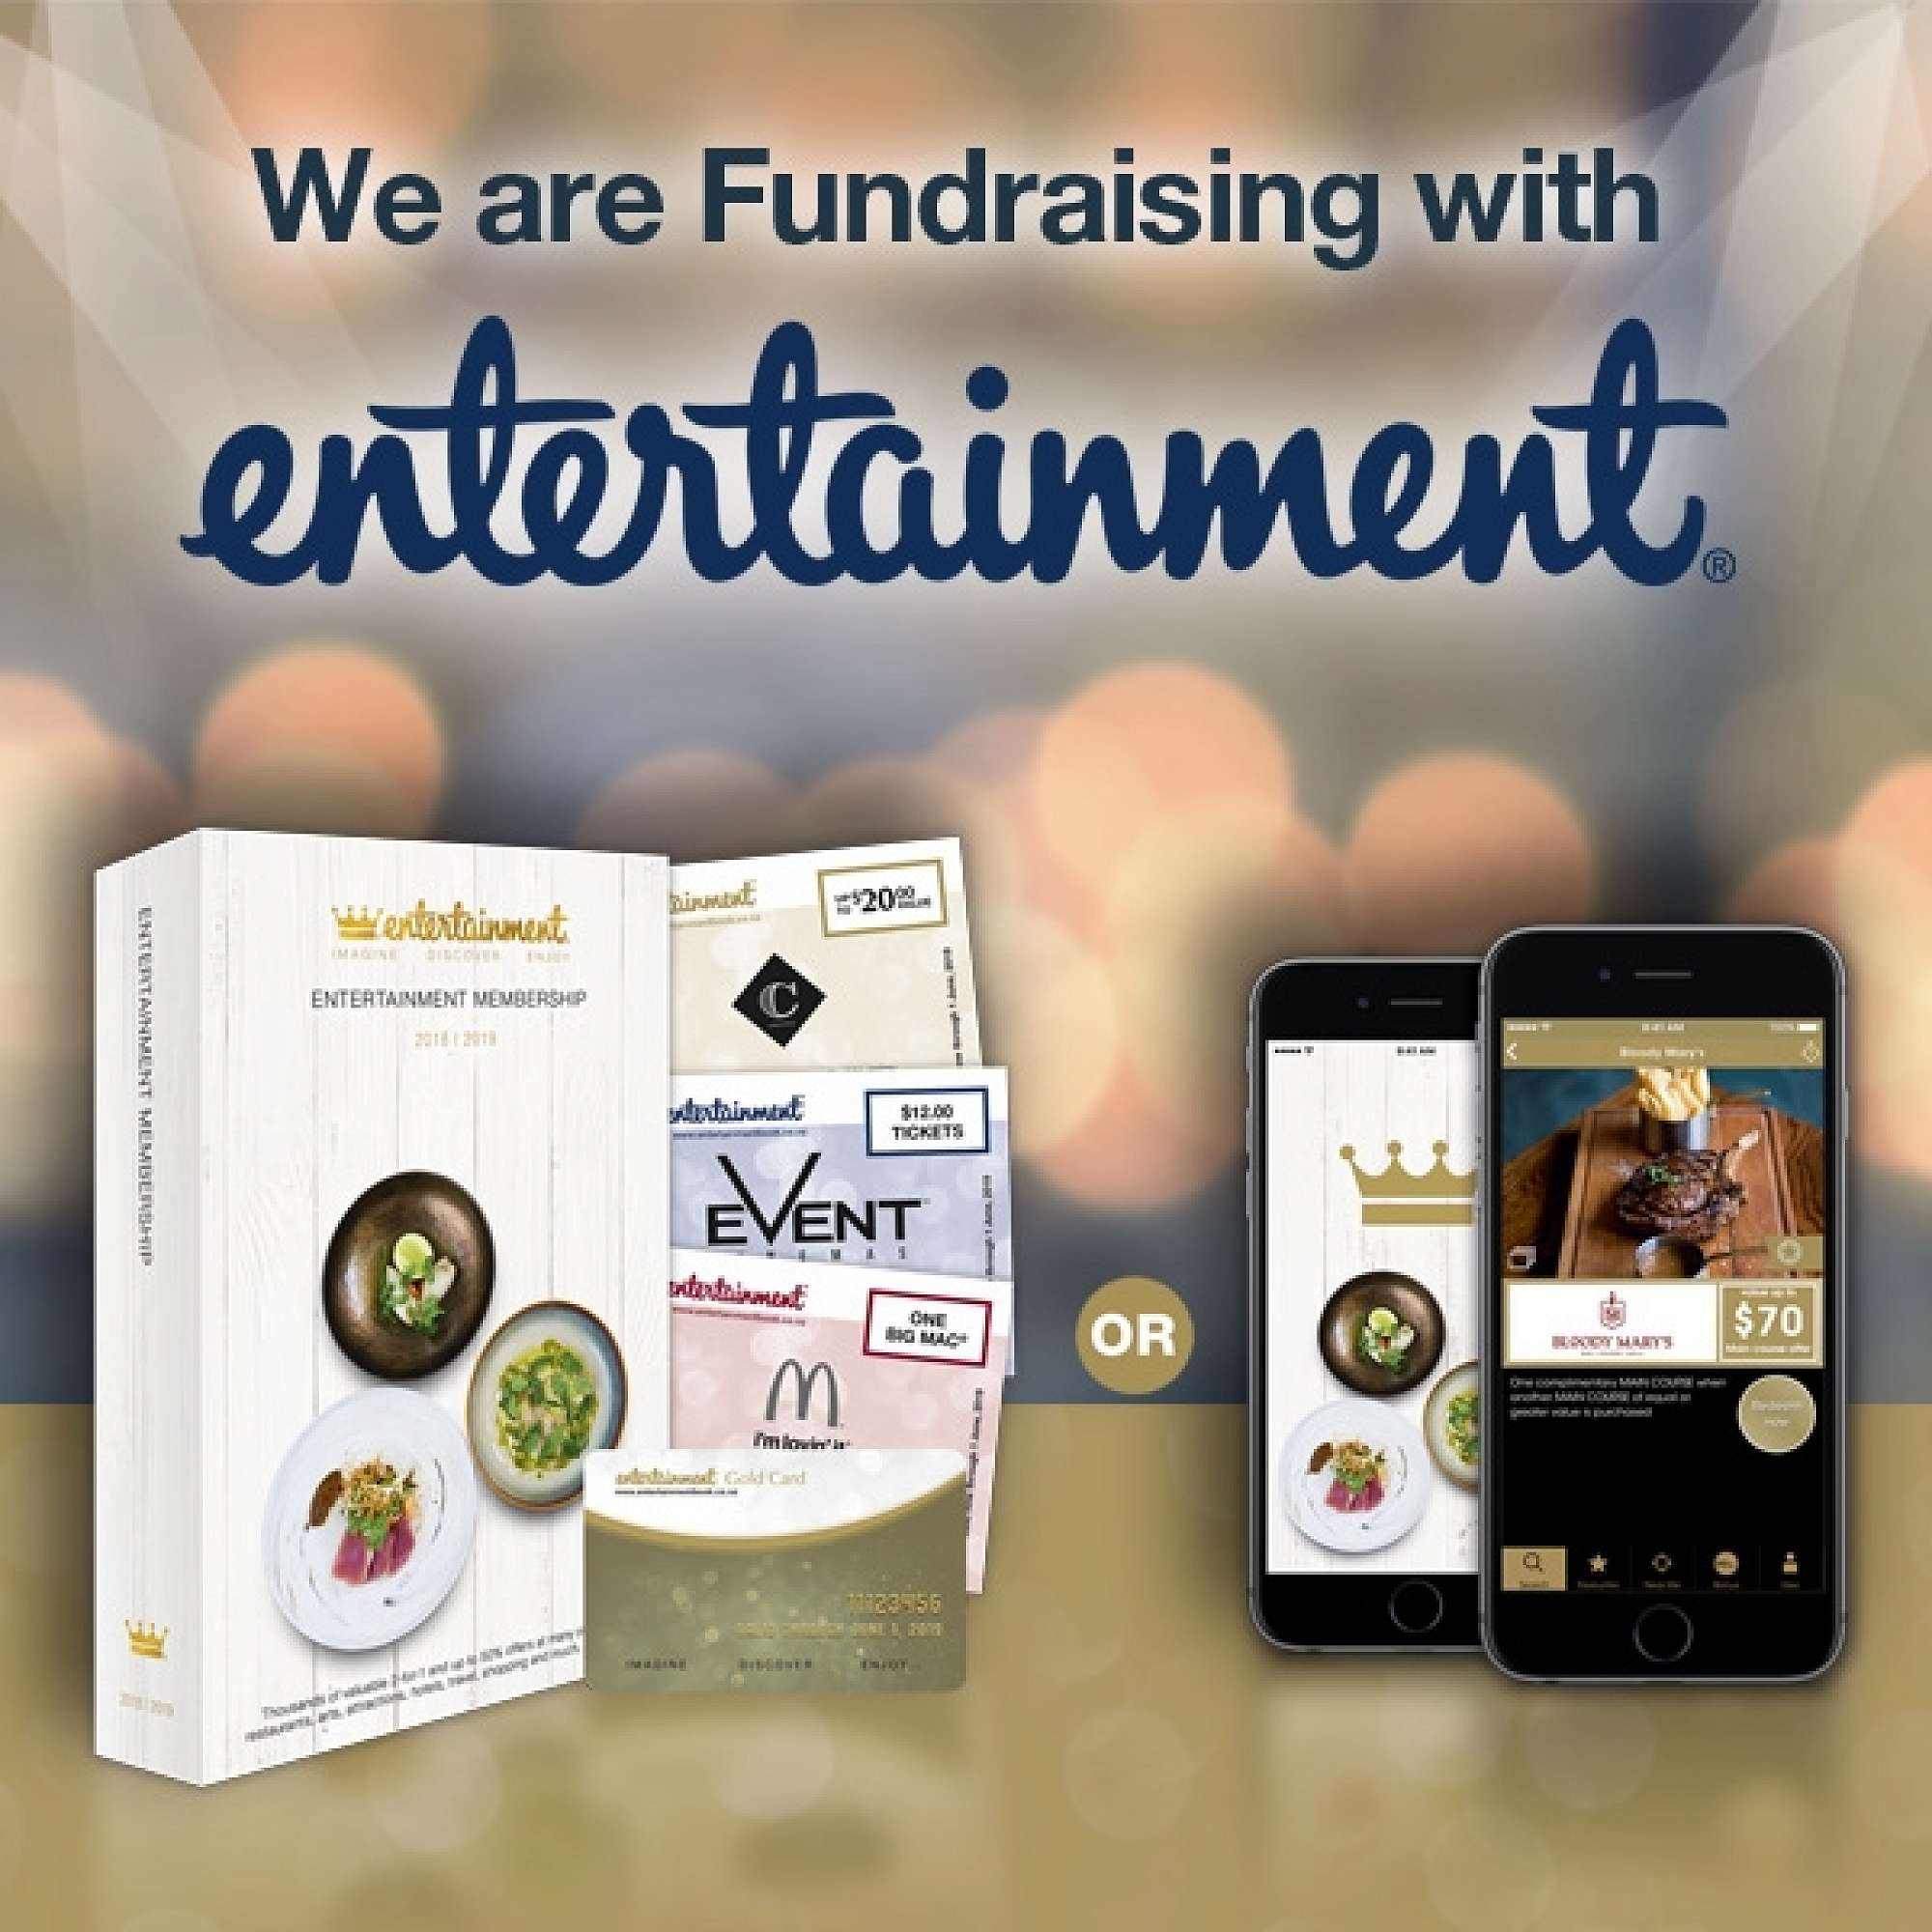 Help Us Fundraise With Entertainment – 20% of your purchase comes directly to the school